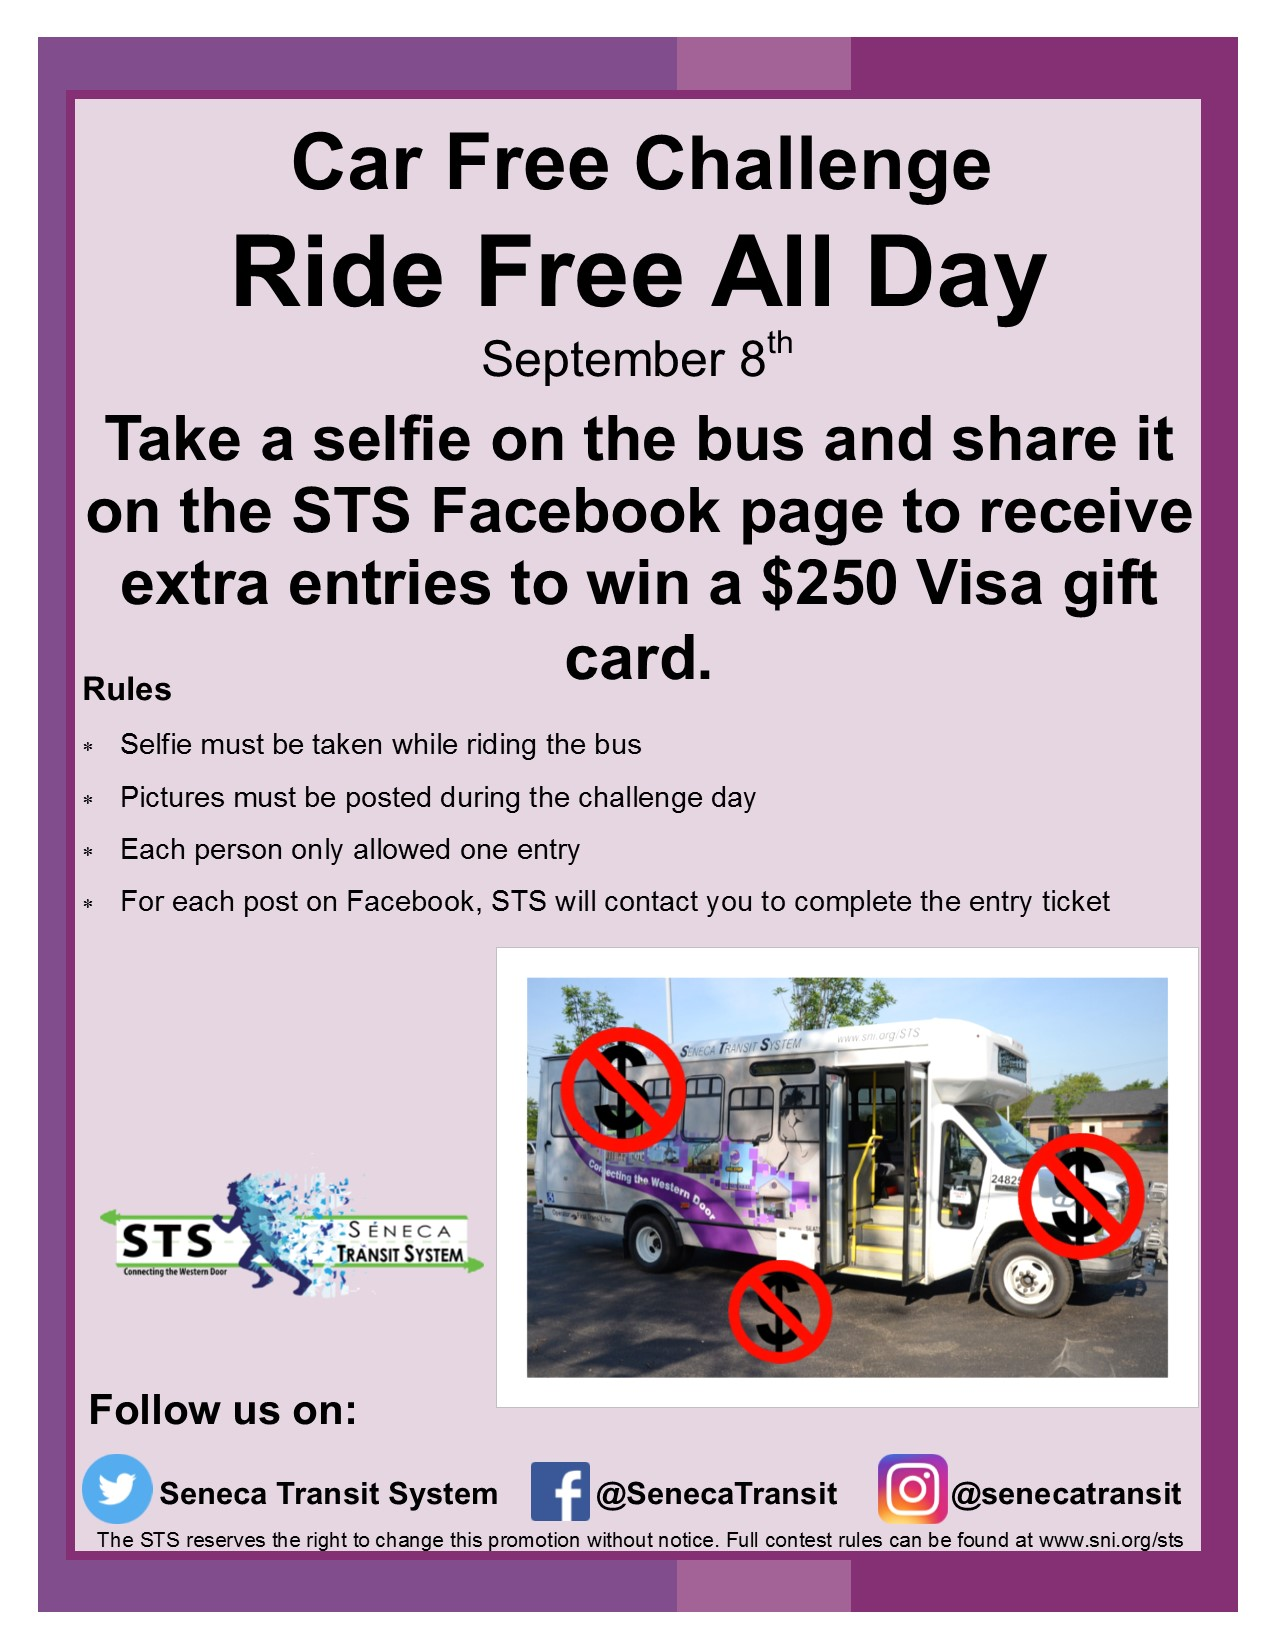 Seneca Transit Promo - Ride Free All Day on September 8th.